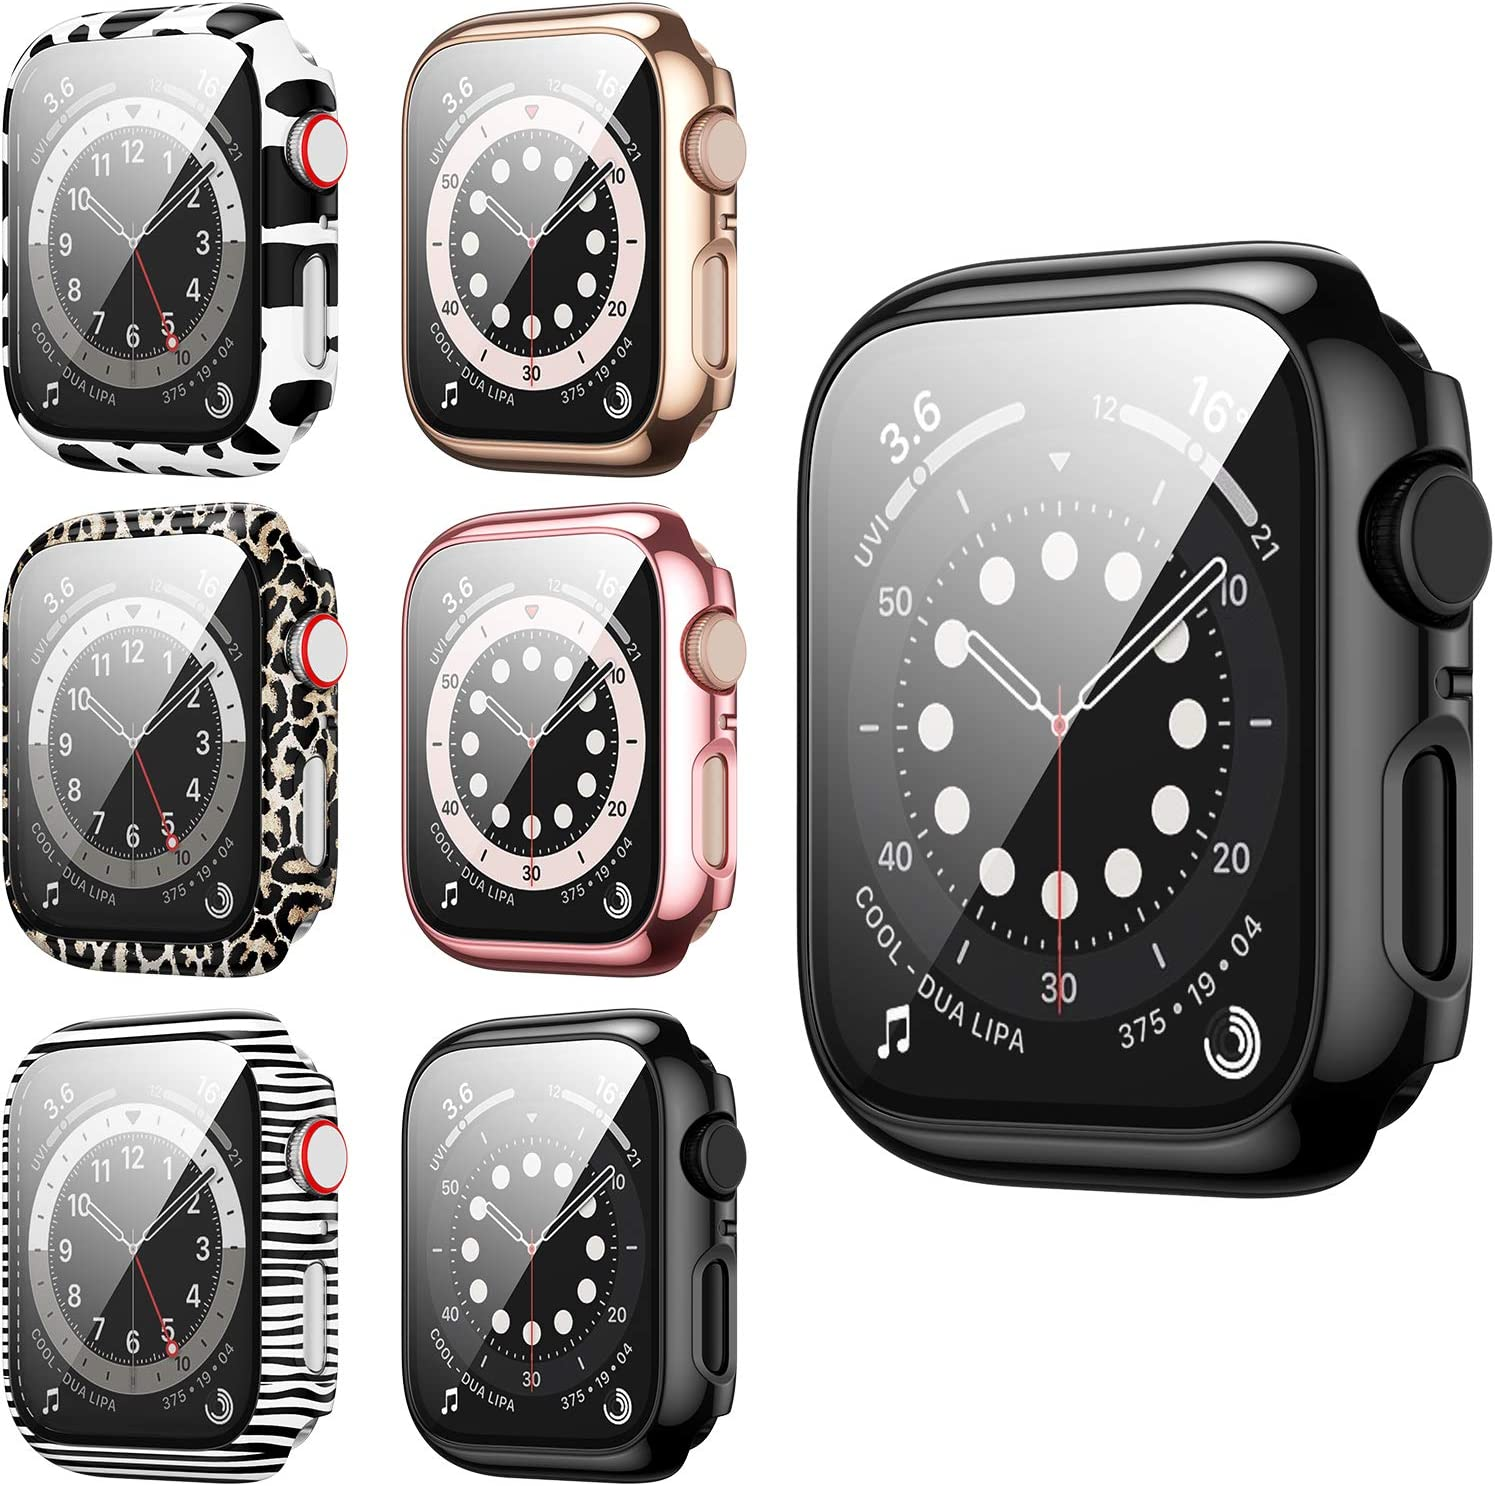 6 Pack Hard PC Case Compatible with Apple Watch Series 3/2/1 38mm, BHARVEST Case with Tempered Glass Screen Protector Overall Bubble-Free Cover for iWatch Accessories